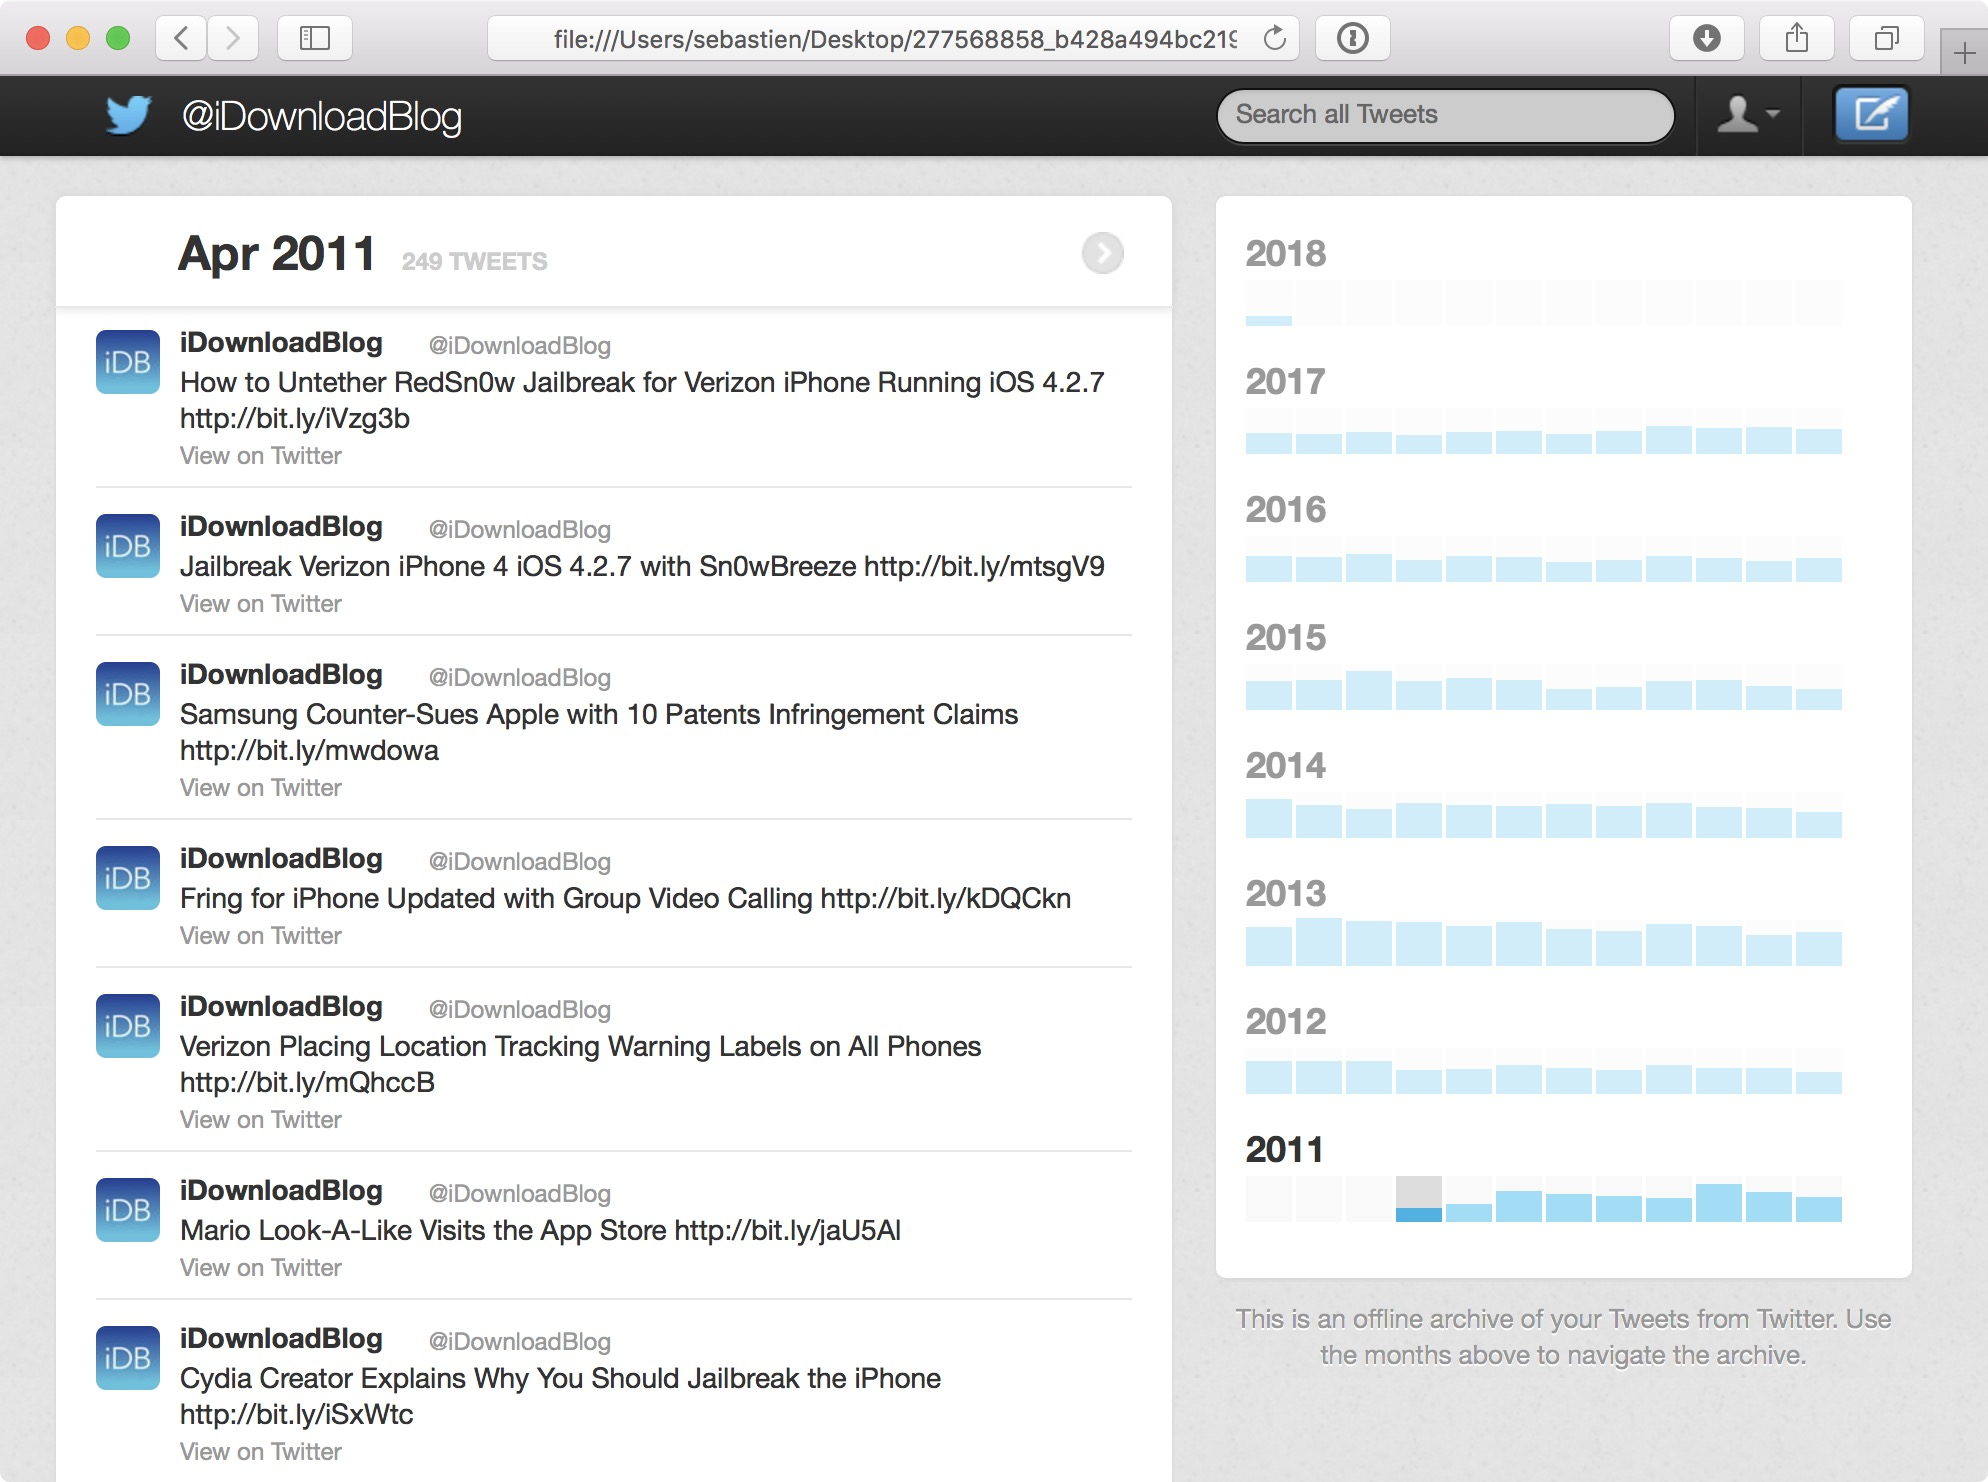 How to download and view your entire Twitter history